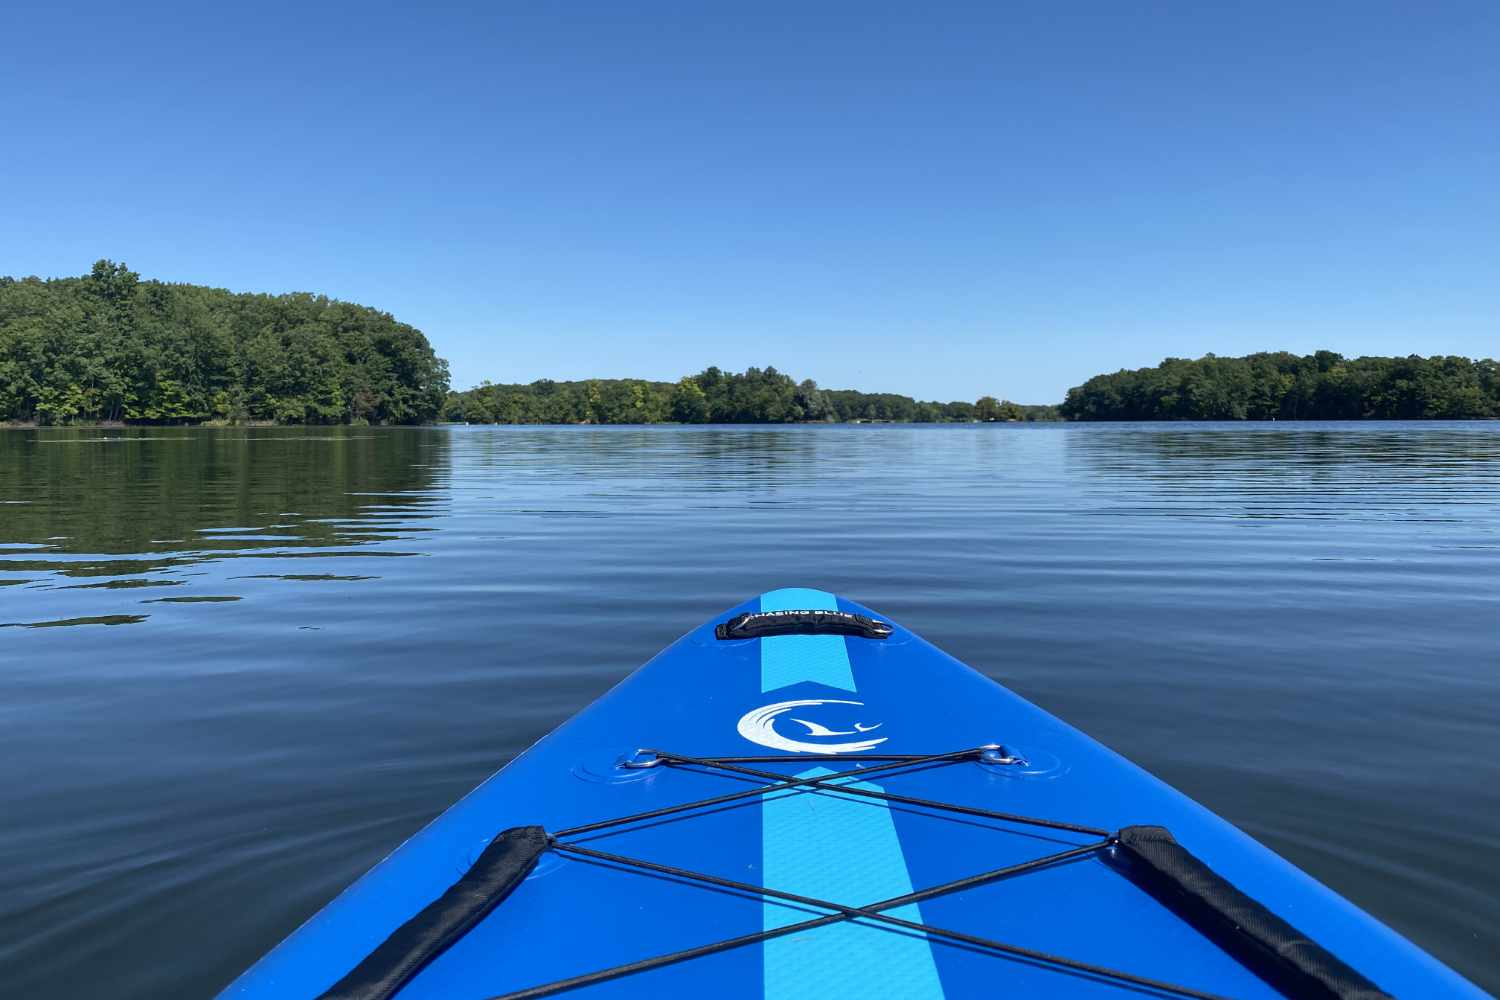 paddleboard on water